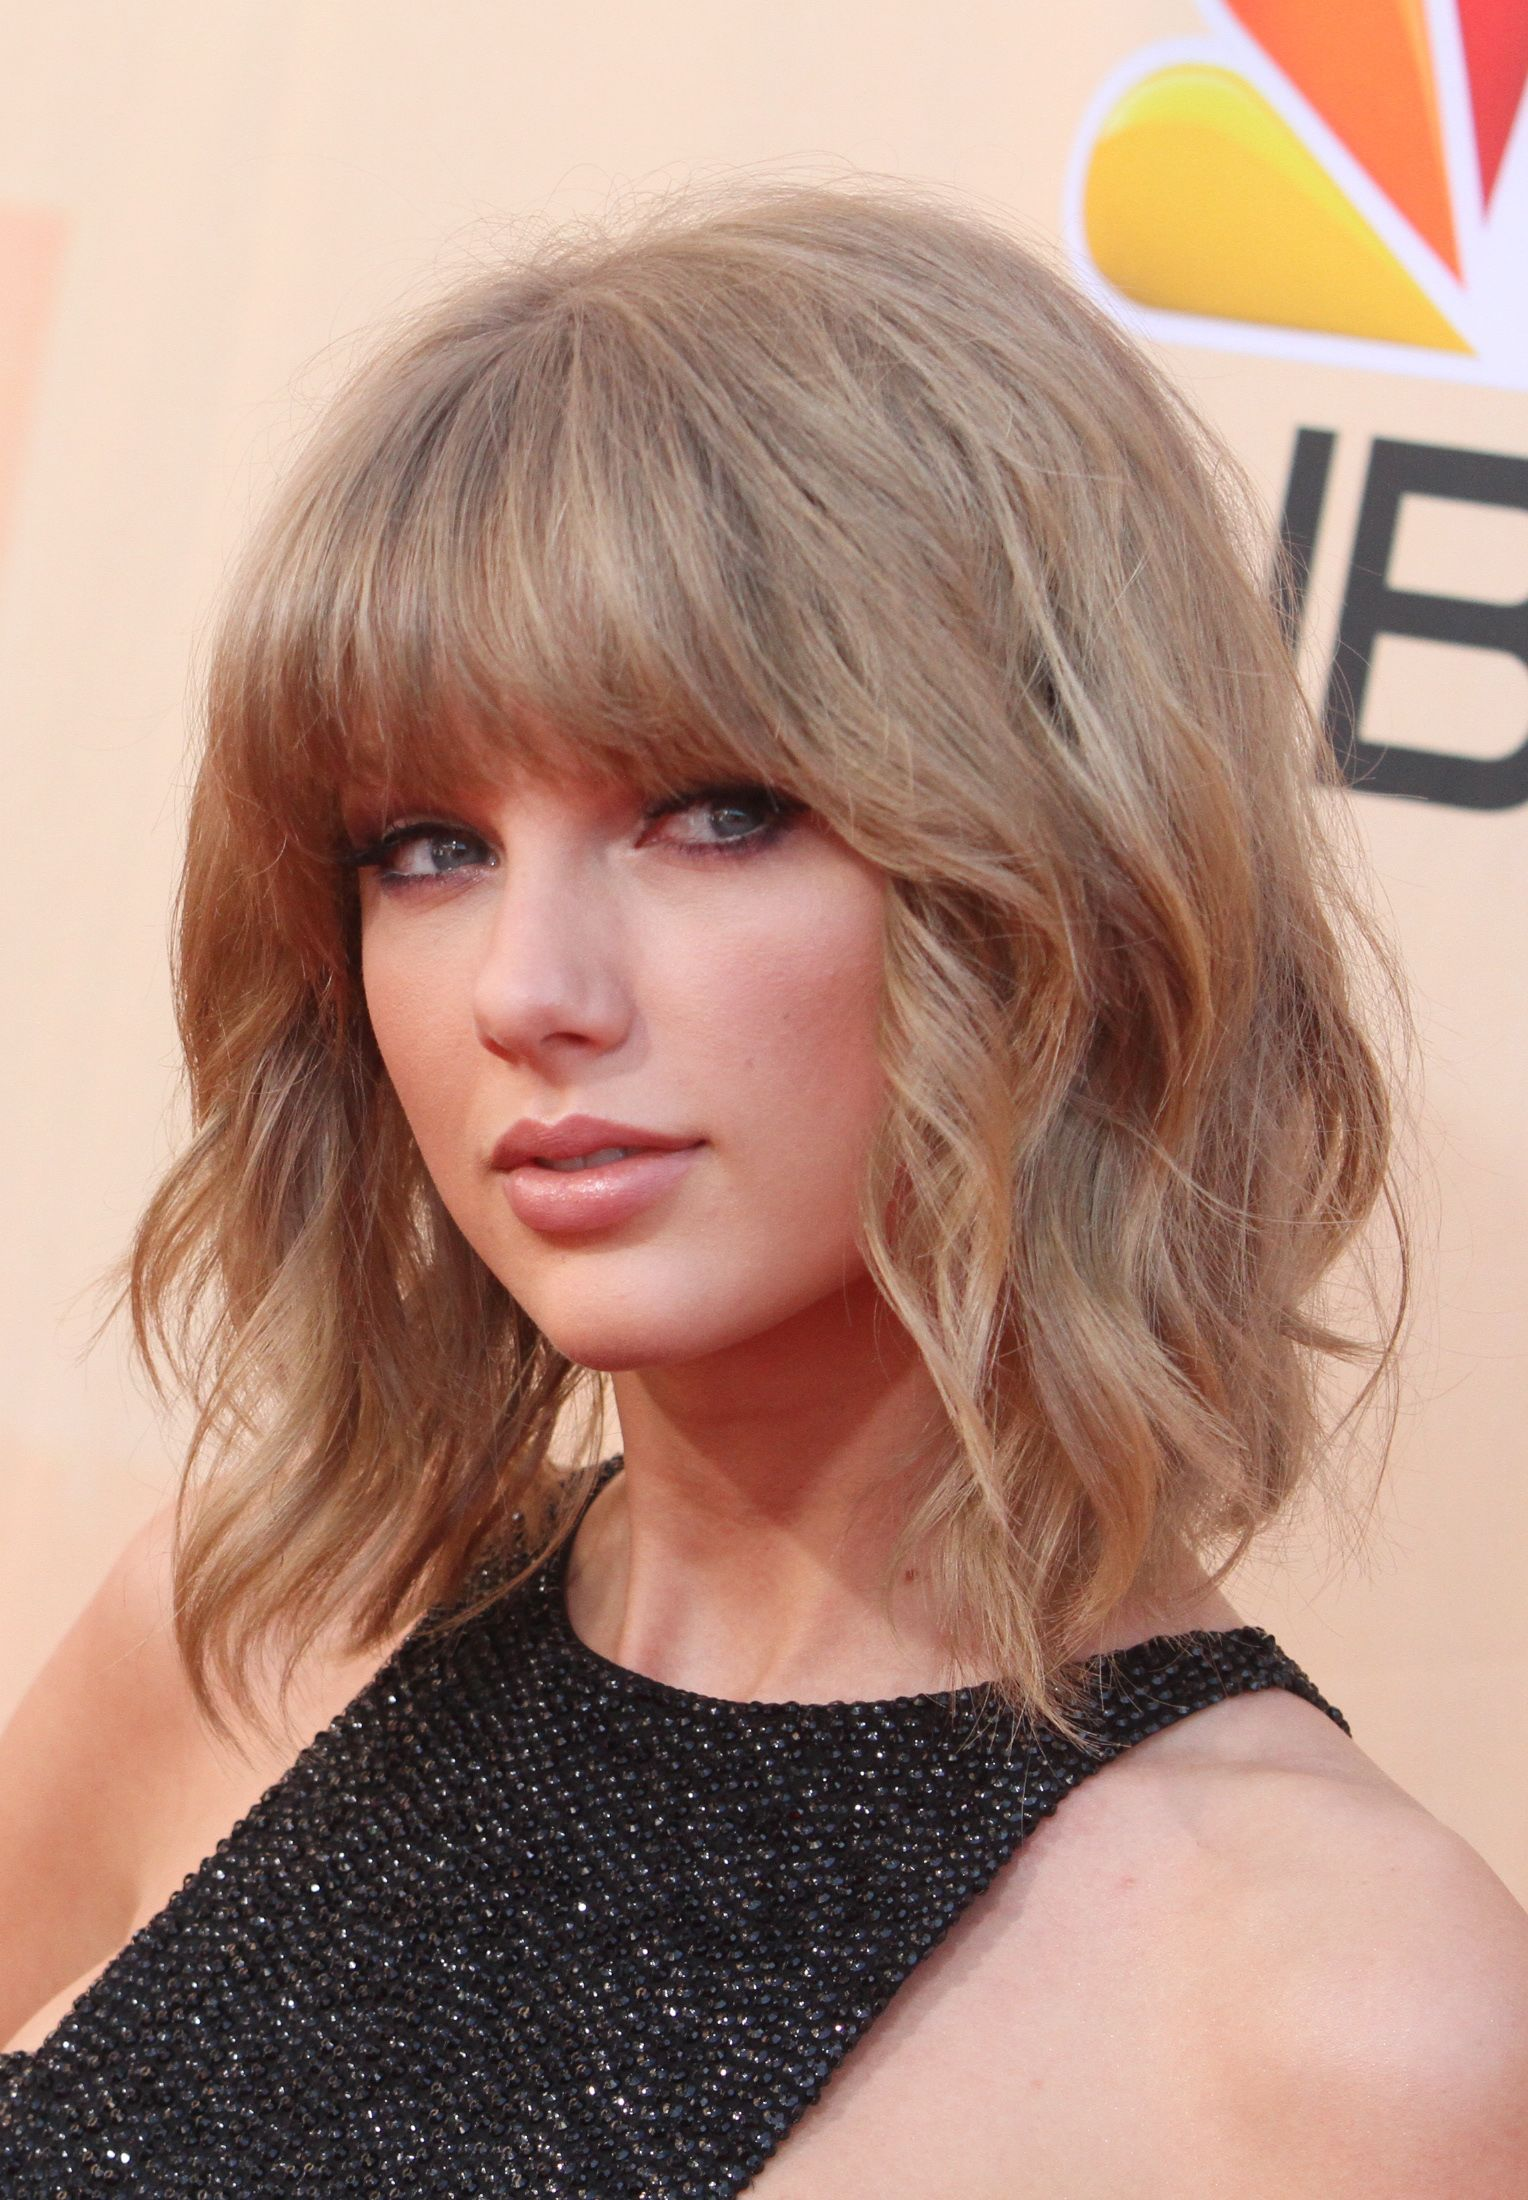 This Is How Taylor Swift Does Edgy Taylor Swift Short Hair Taylor Swift Hair Taylor Swift Haircut